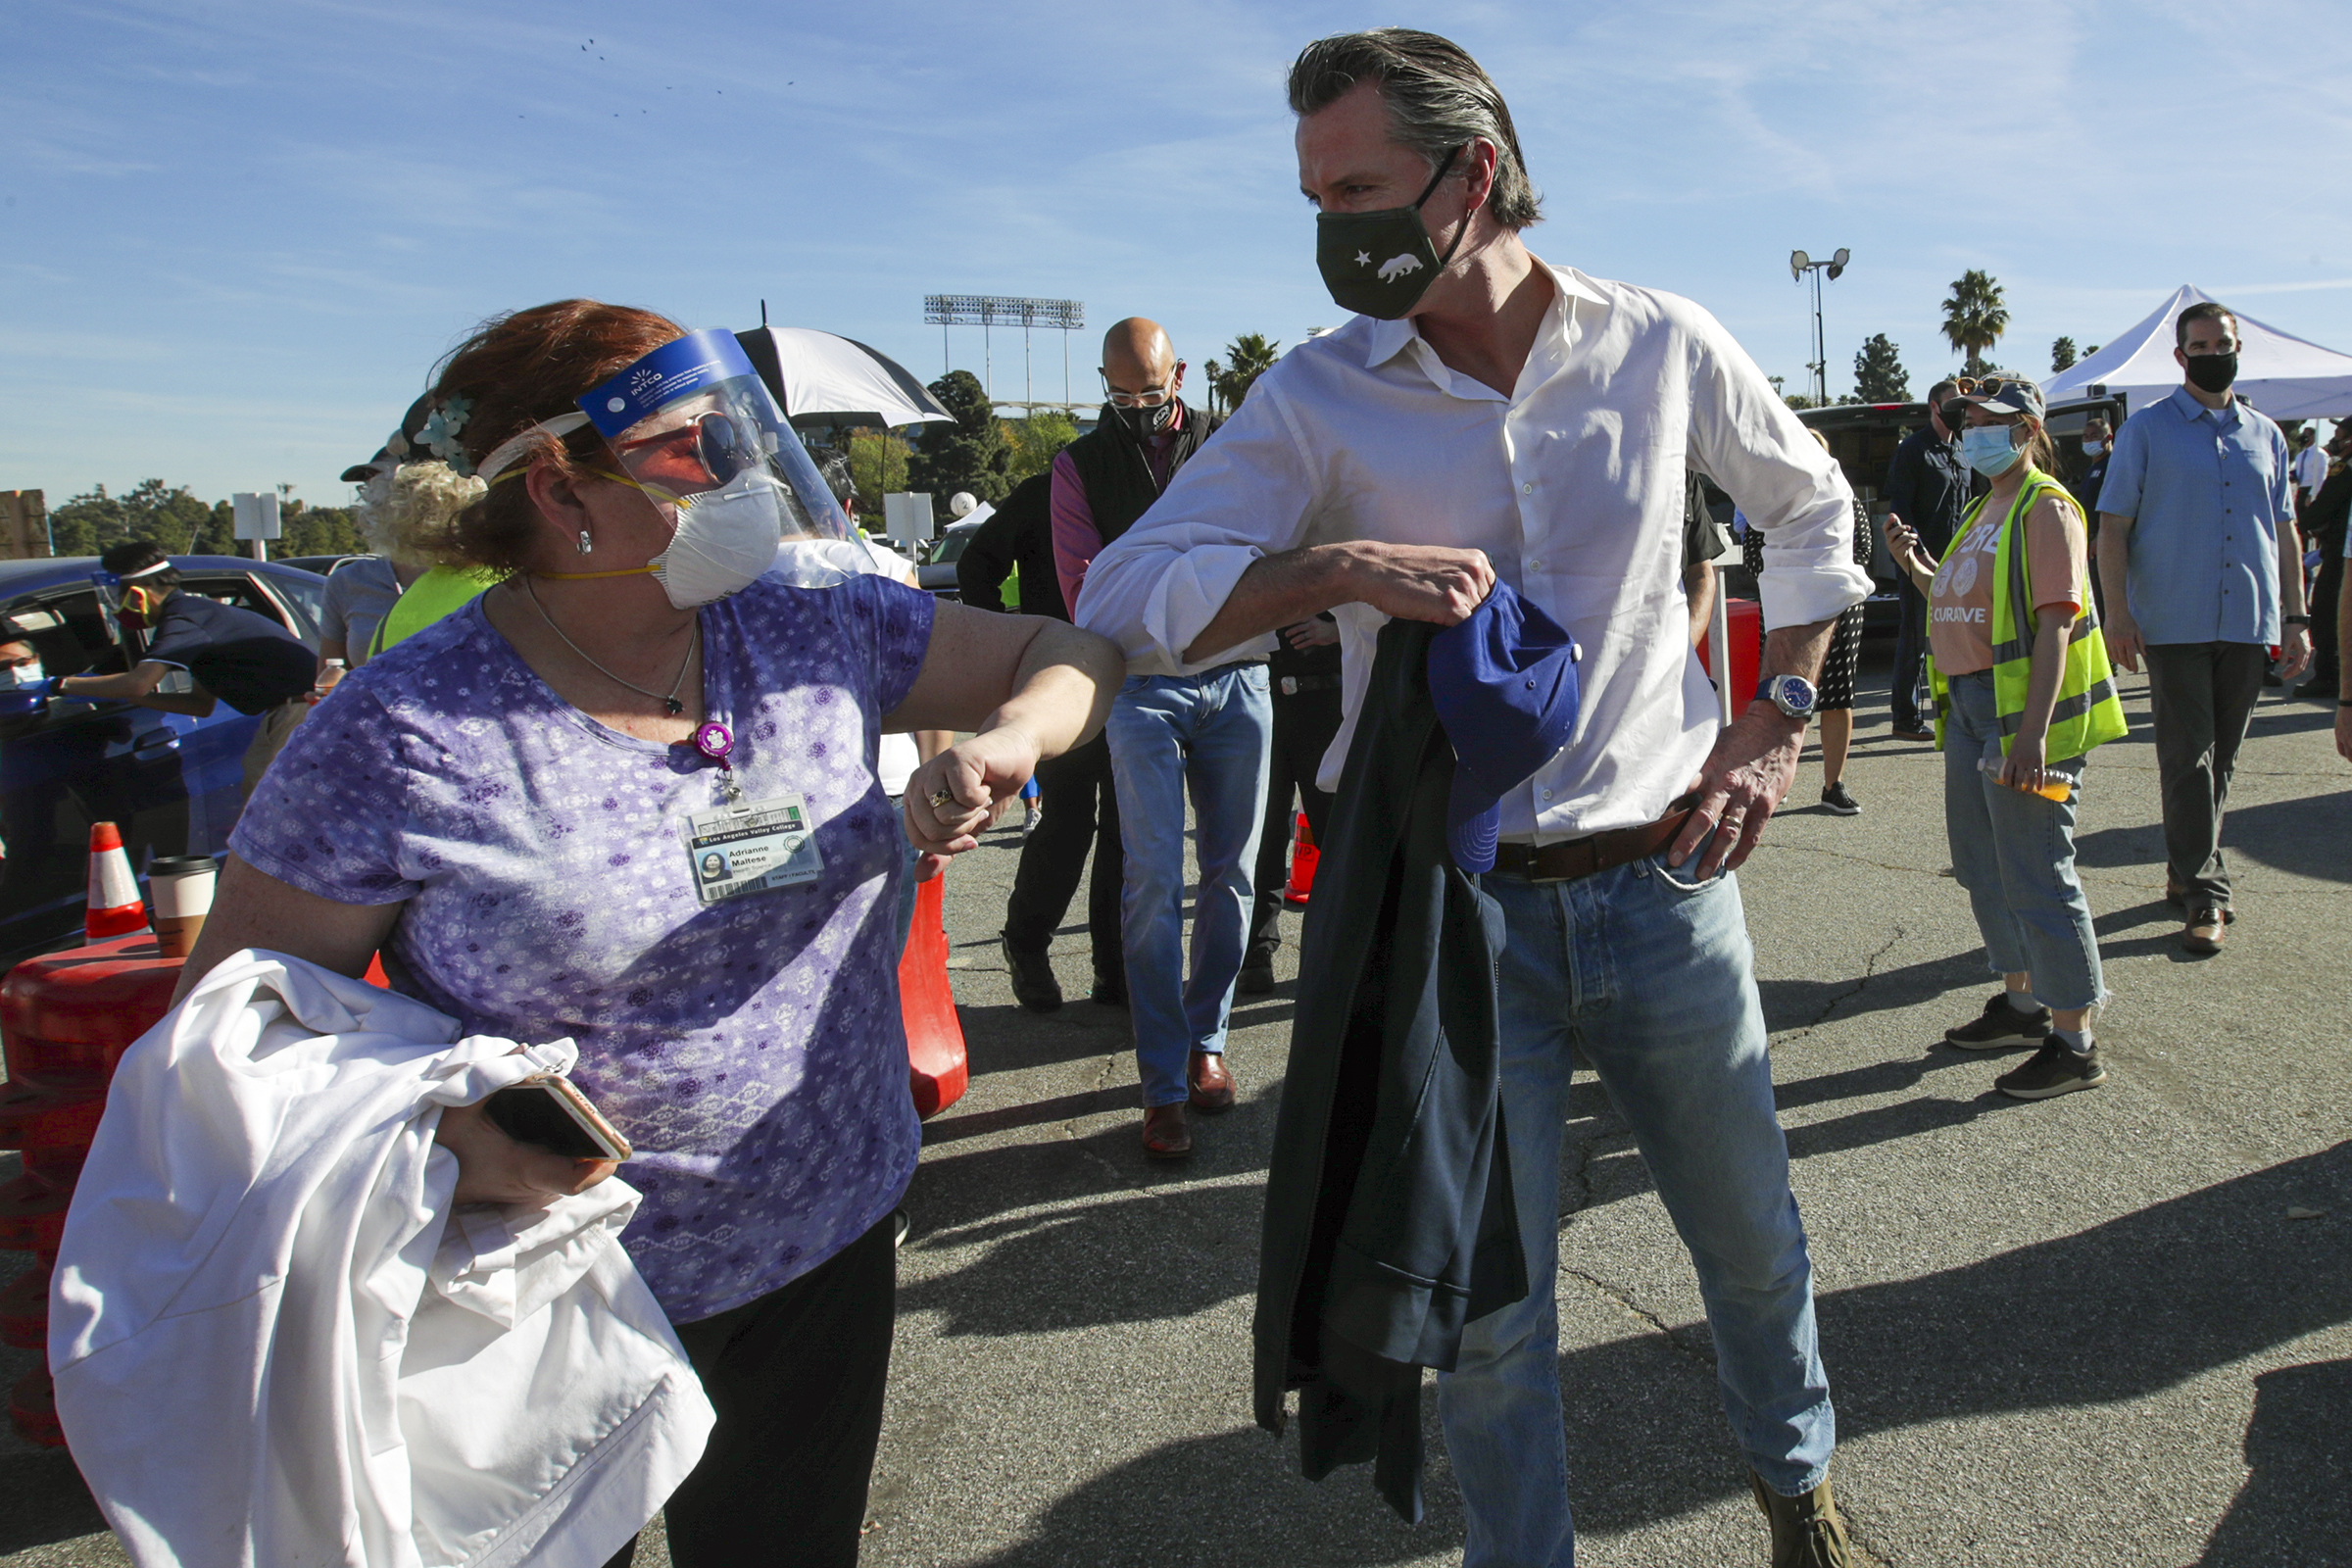 California Gov. Gavin Newsom is greeted by a healthcare worker at the launch of a mass coronavirus vaccination site at Dodger Stadium on Jan. 15 in Los Angeles, California. (Irfan Khan/Pool/AFP via Getty Images)